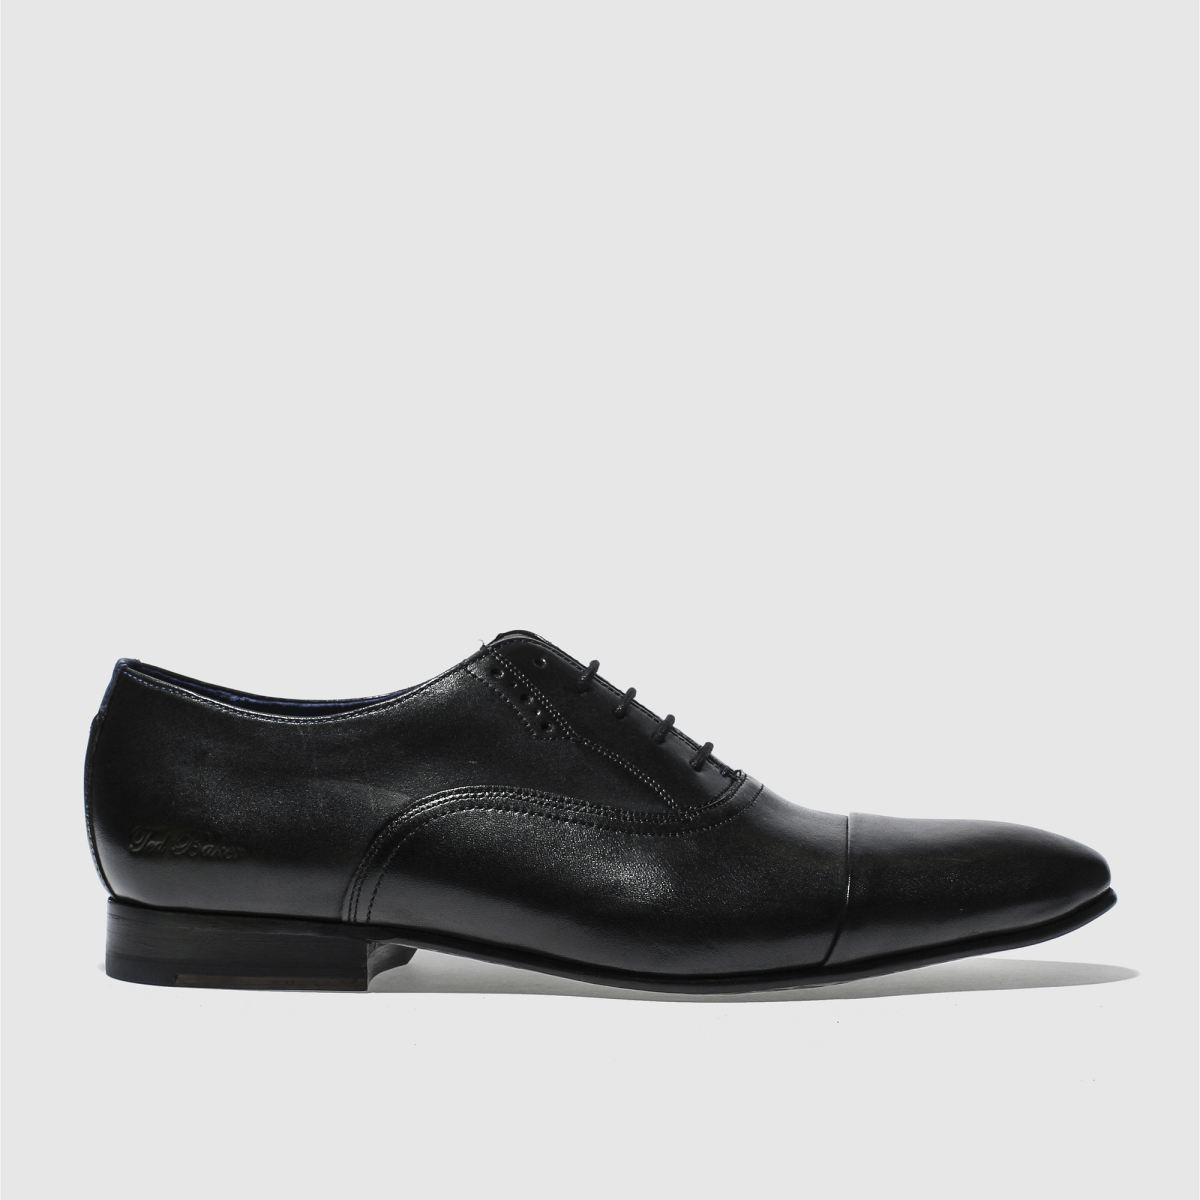 9442631a58f8 Ted Baker Black Murain Shoes